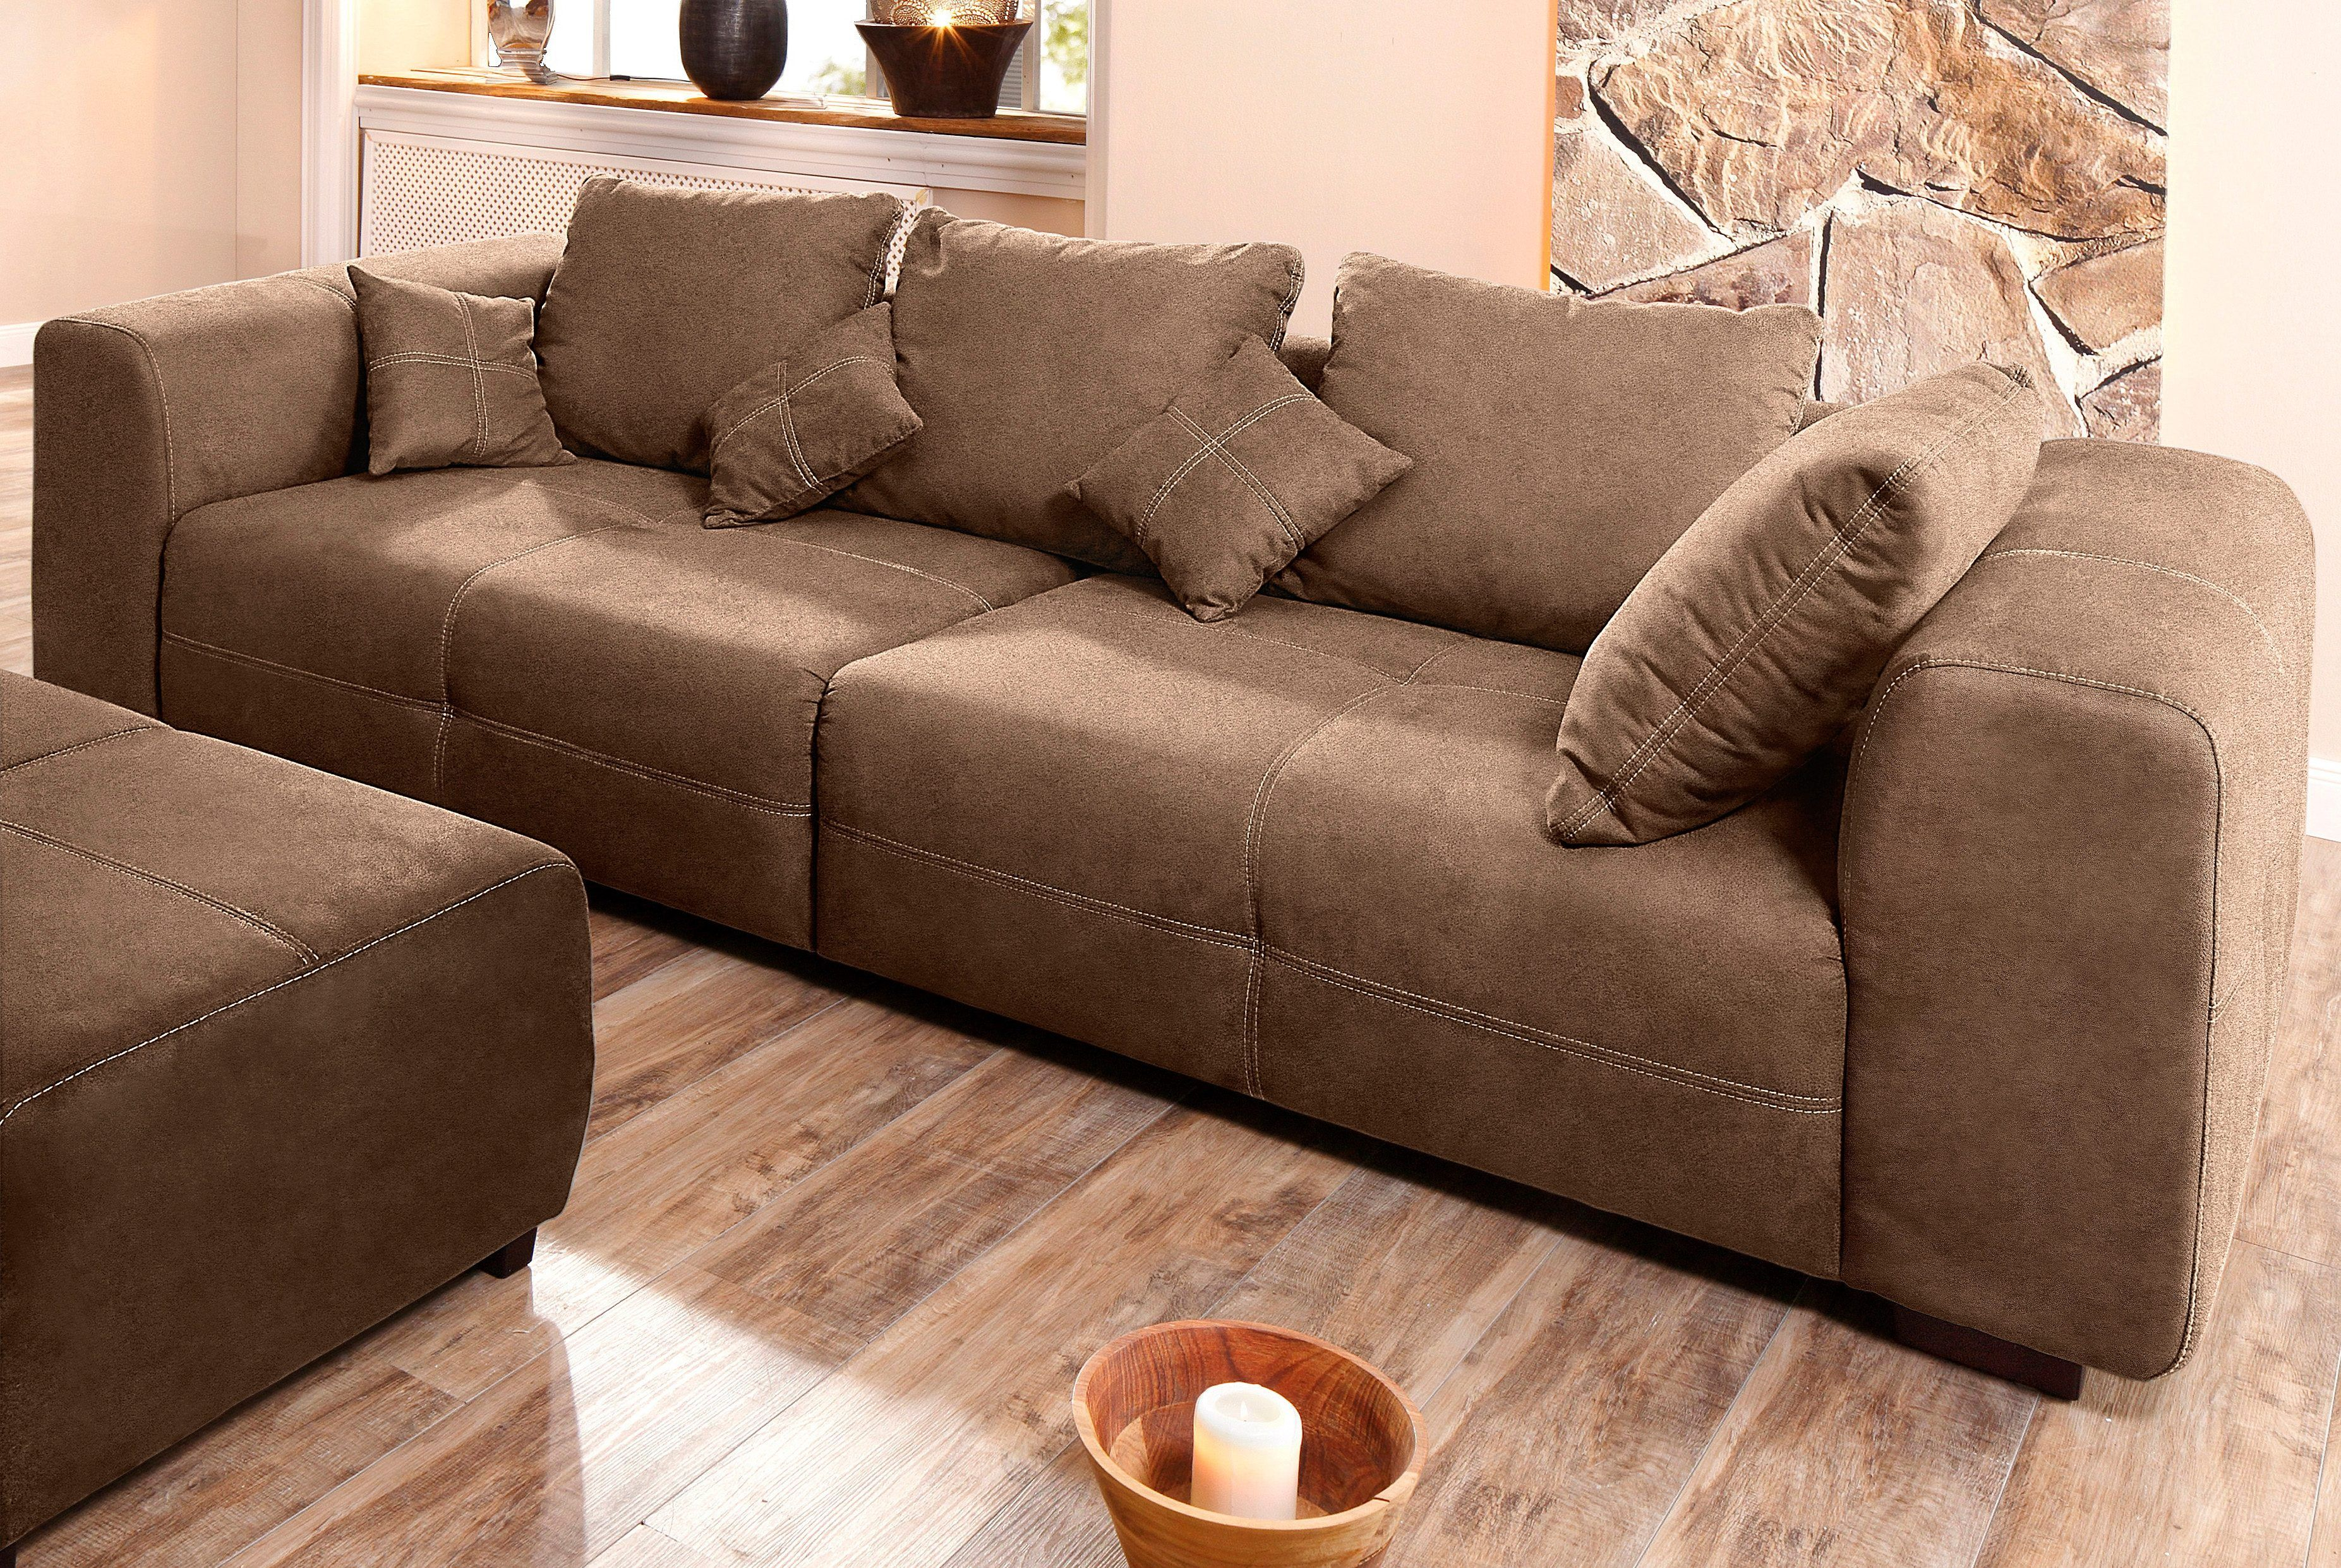 Big-sofa, Energieeffizienz: A Pin By Ladendirekt On Sofas Couches Big Sofas Sofa Chesterfield